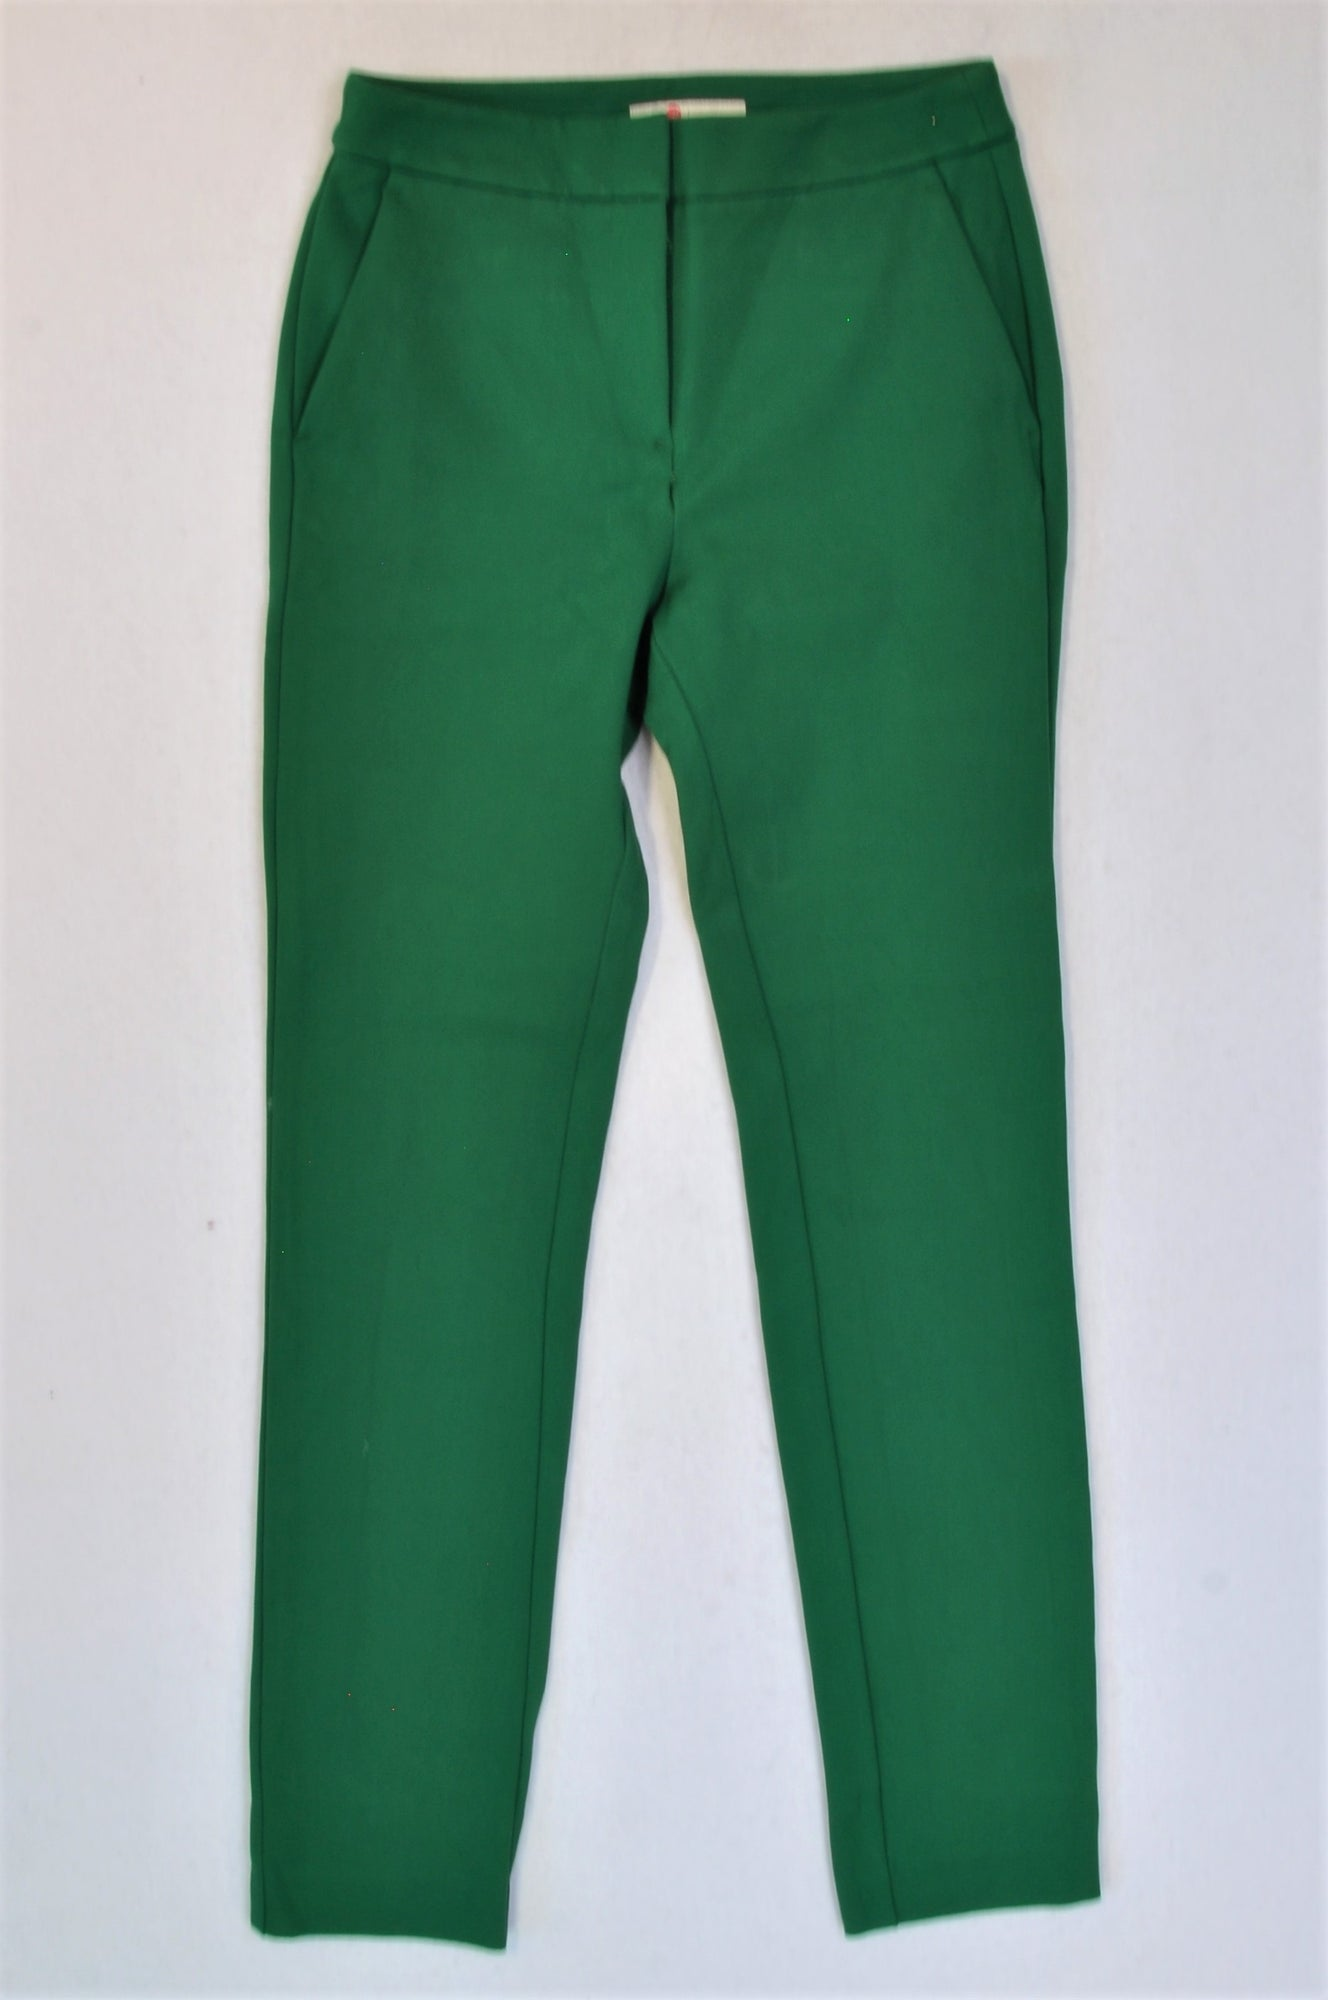 Boden Green Pants Women Size 8